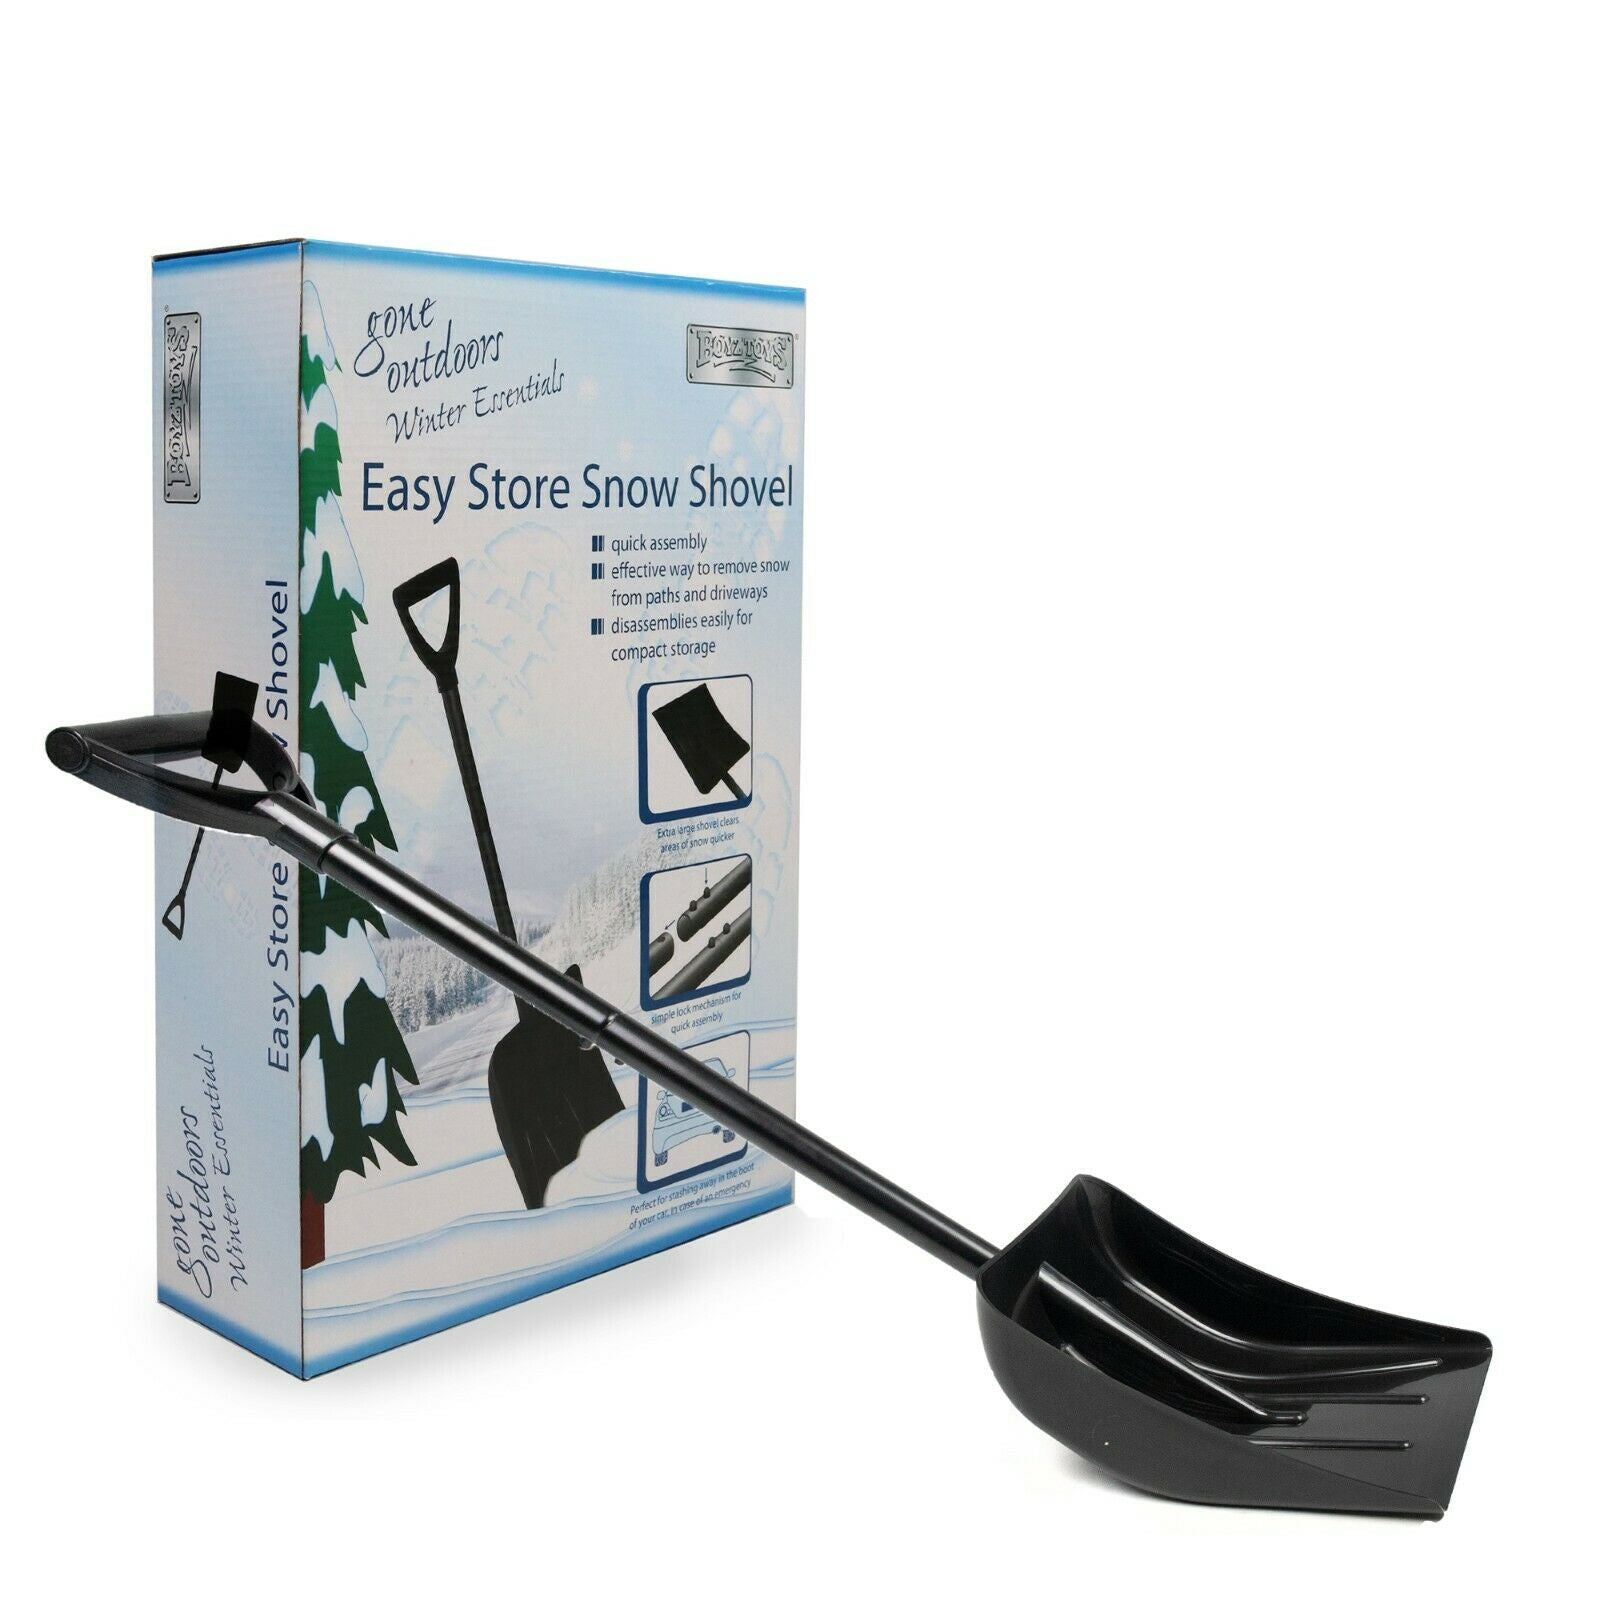 Gone Outdoors Collapsible Snow Shovel